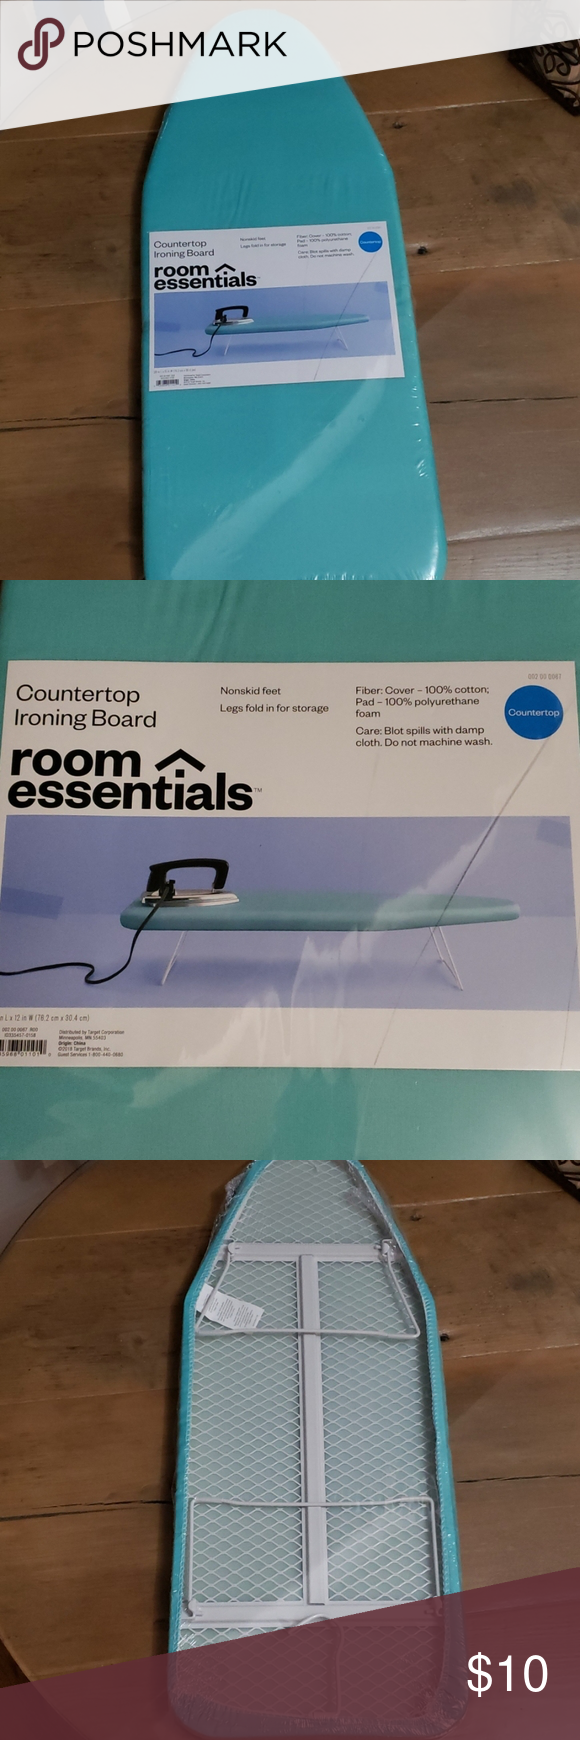 Nwt Countertop Ironing Board A Room Essentials Countertop Ironing